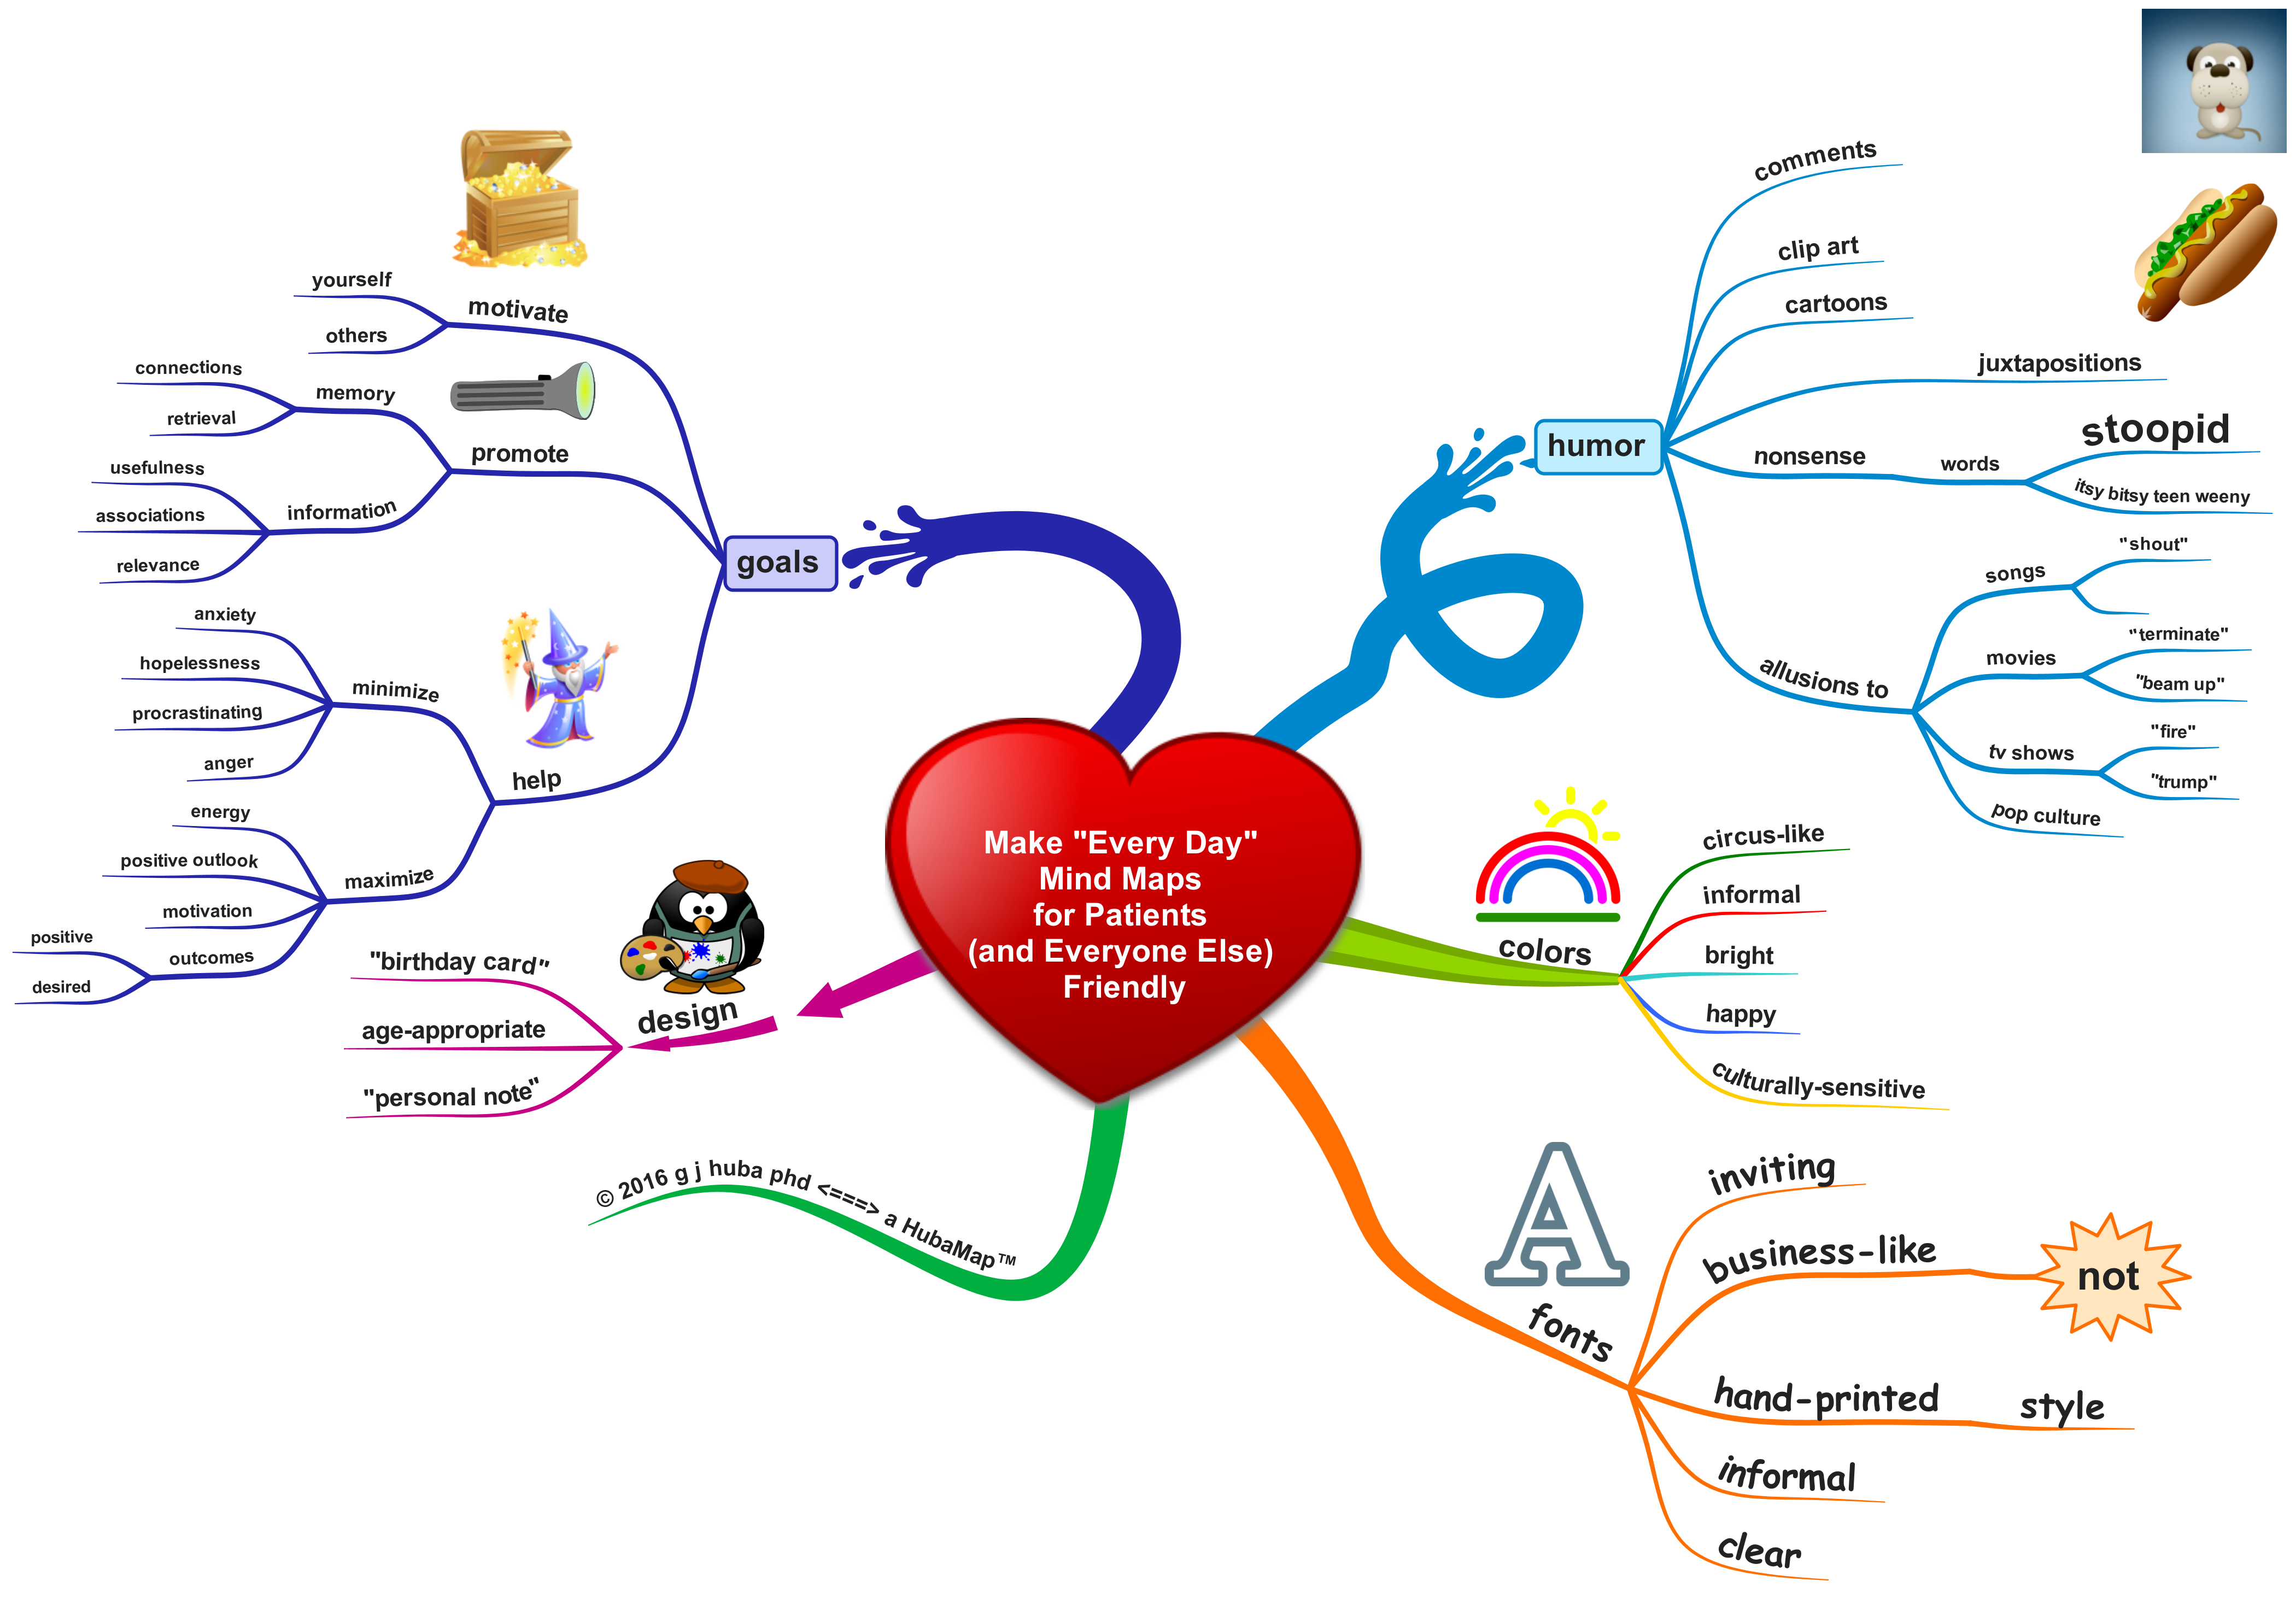 Make Every Day Mind Maps for Patients (and Everyone Else) Friendly